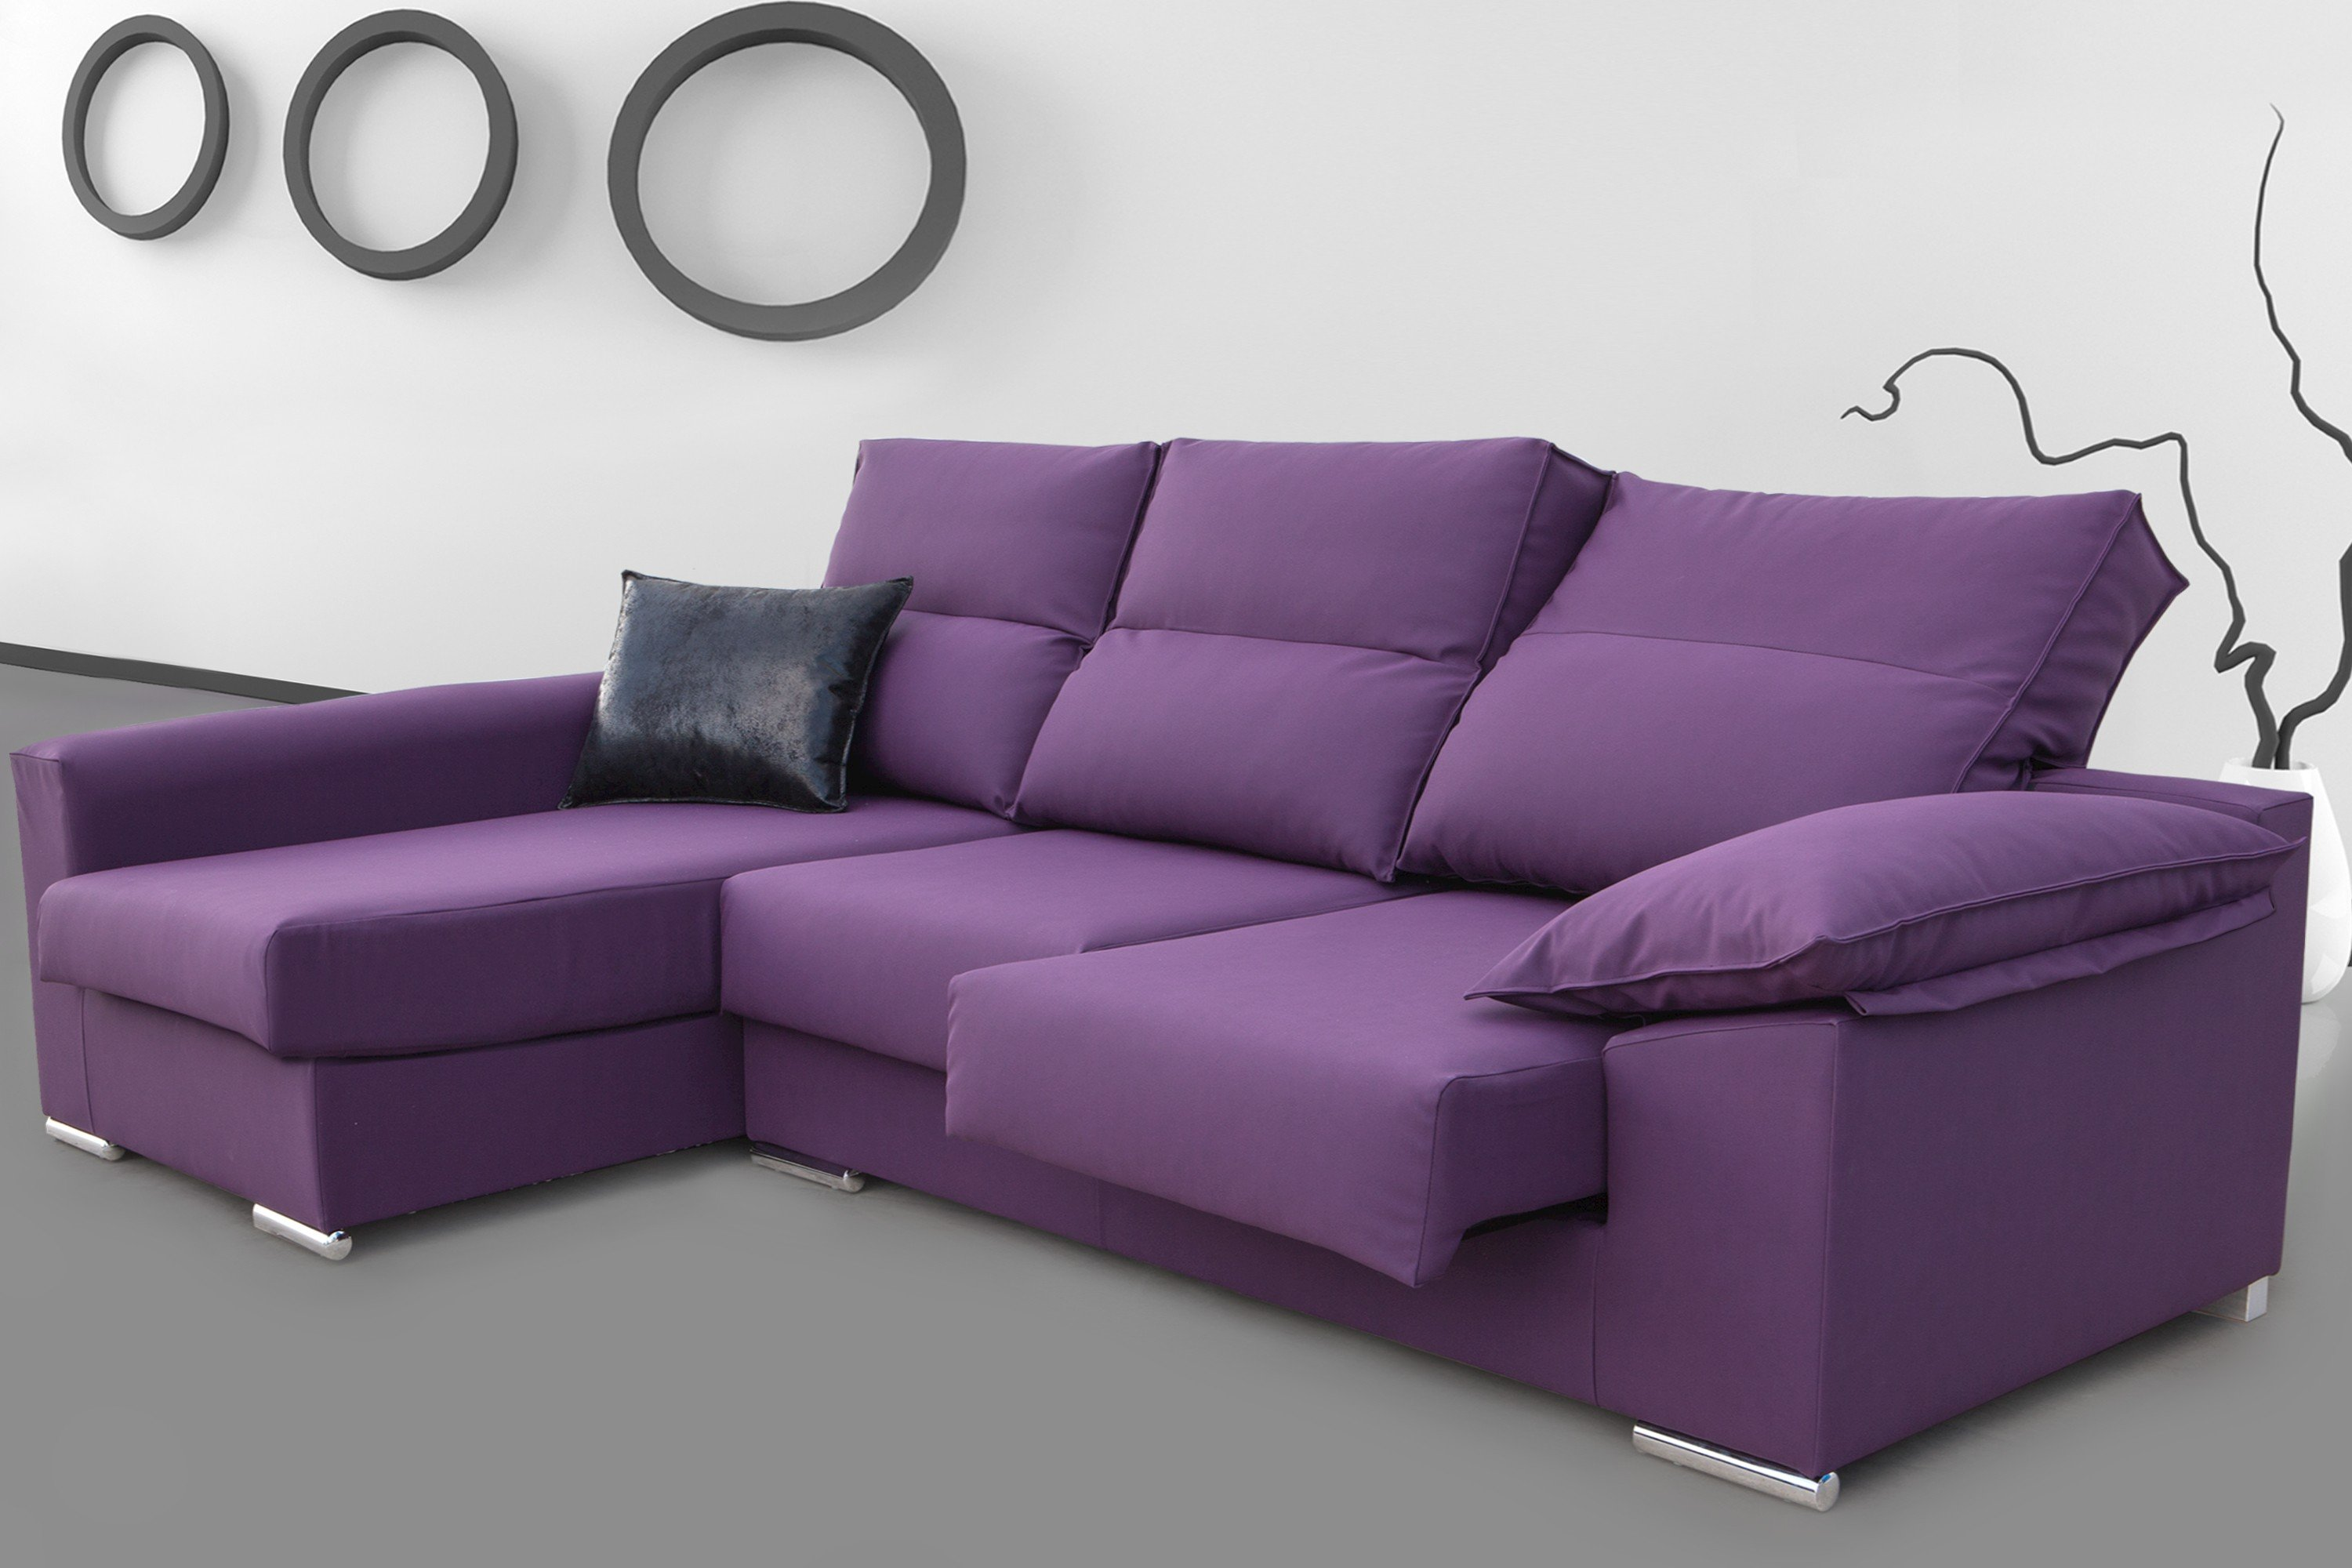 Sof s kal 01 sofas chaise longue sofas cama sillones for Sillones chaise longue